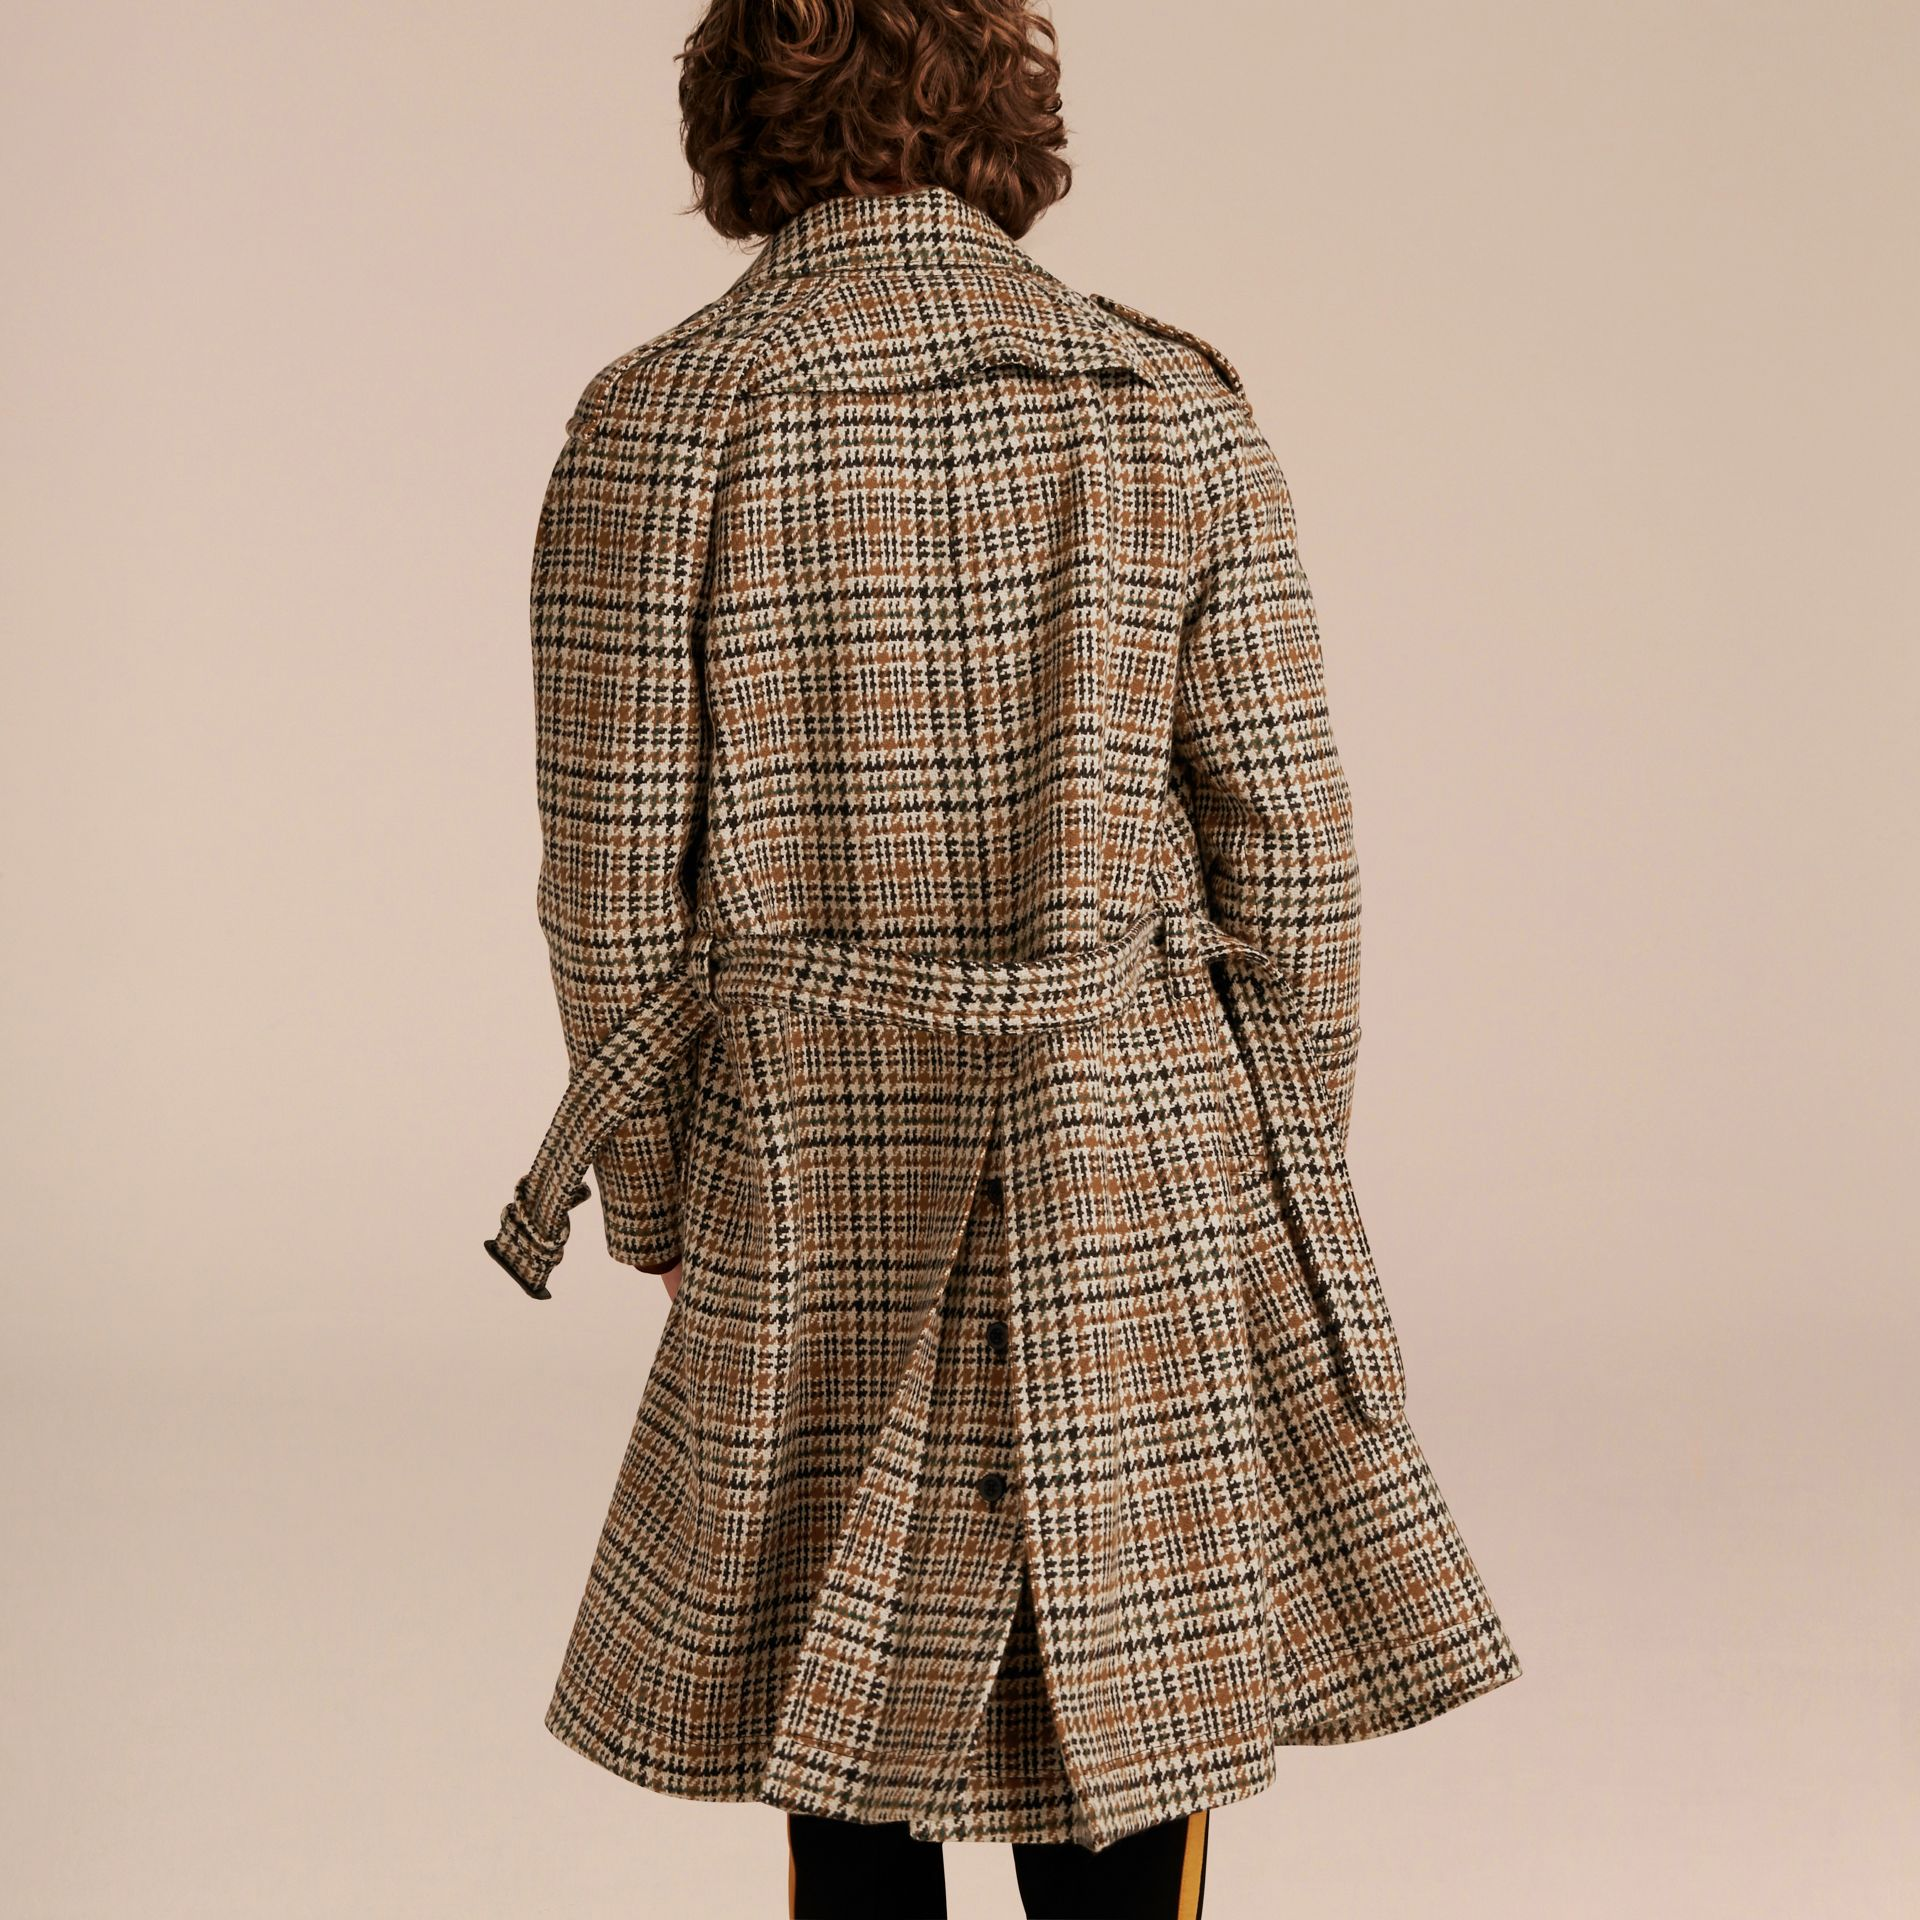 Ochre yellow Single-breasted Wool Tweed Trench Coat - gallery image 3